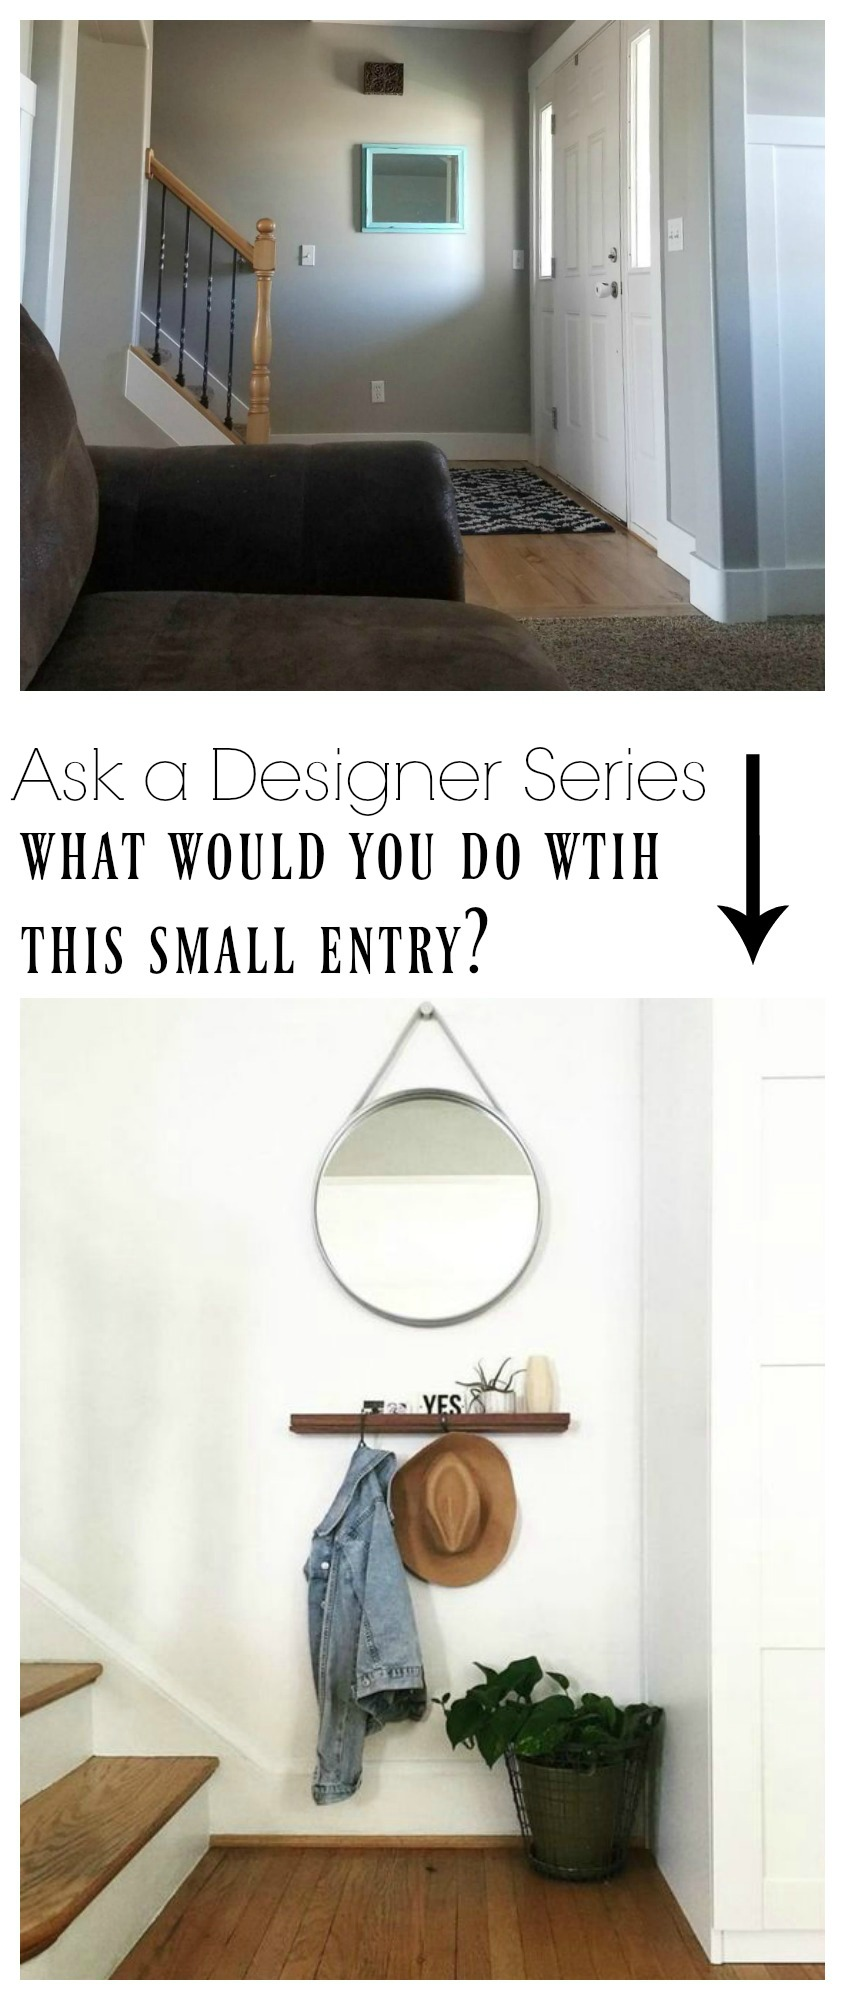 Ask a Designer Series- What would you do with this small entry?